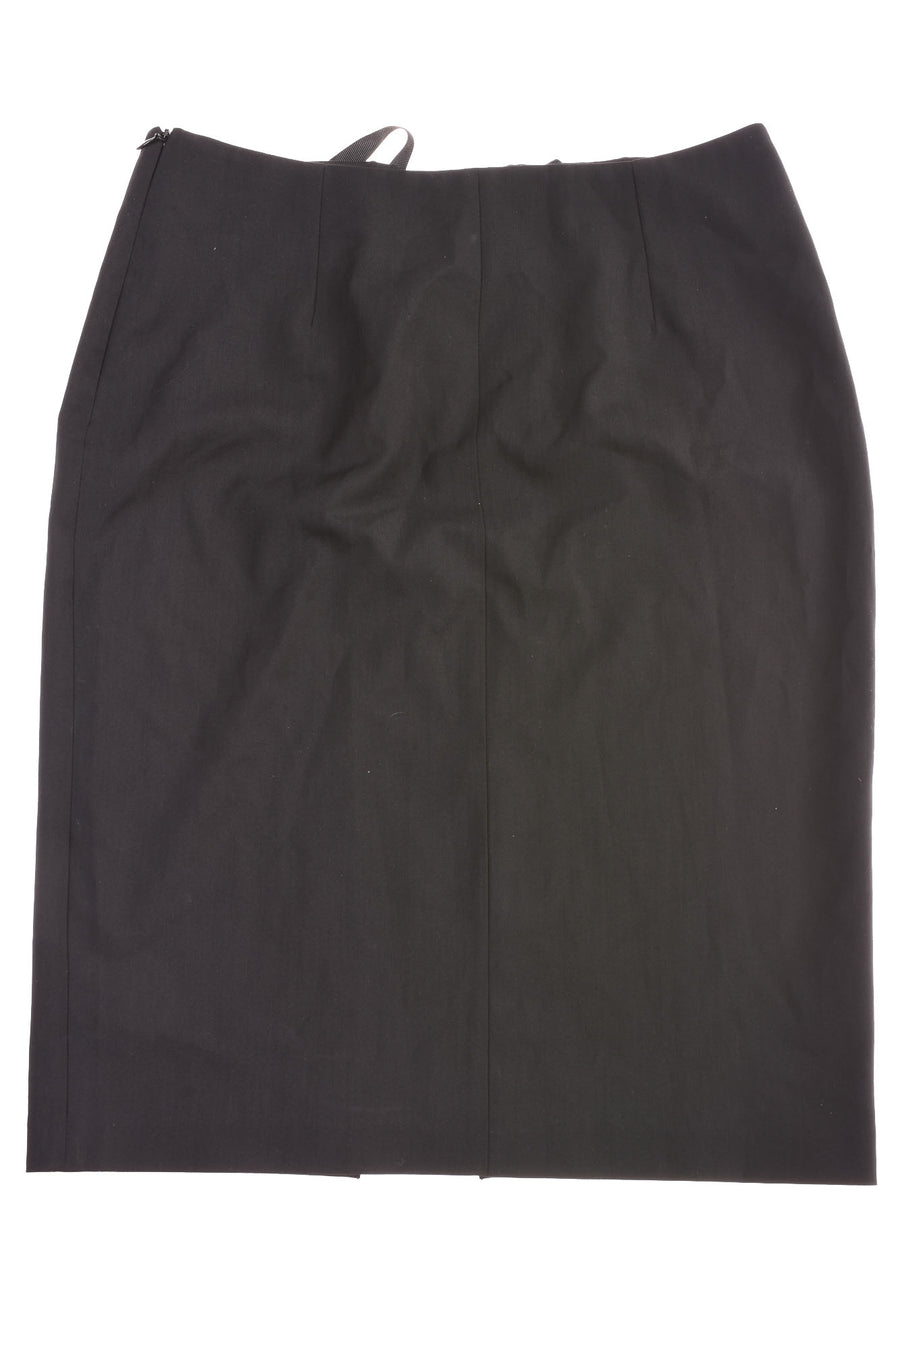 NEW Zui Women's Skirt 10 Black